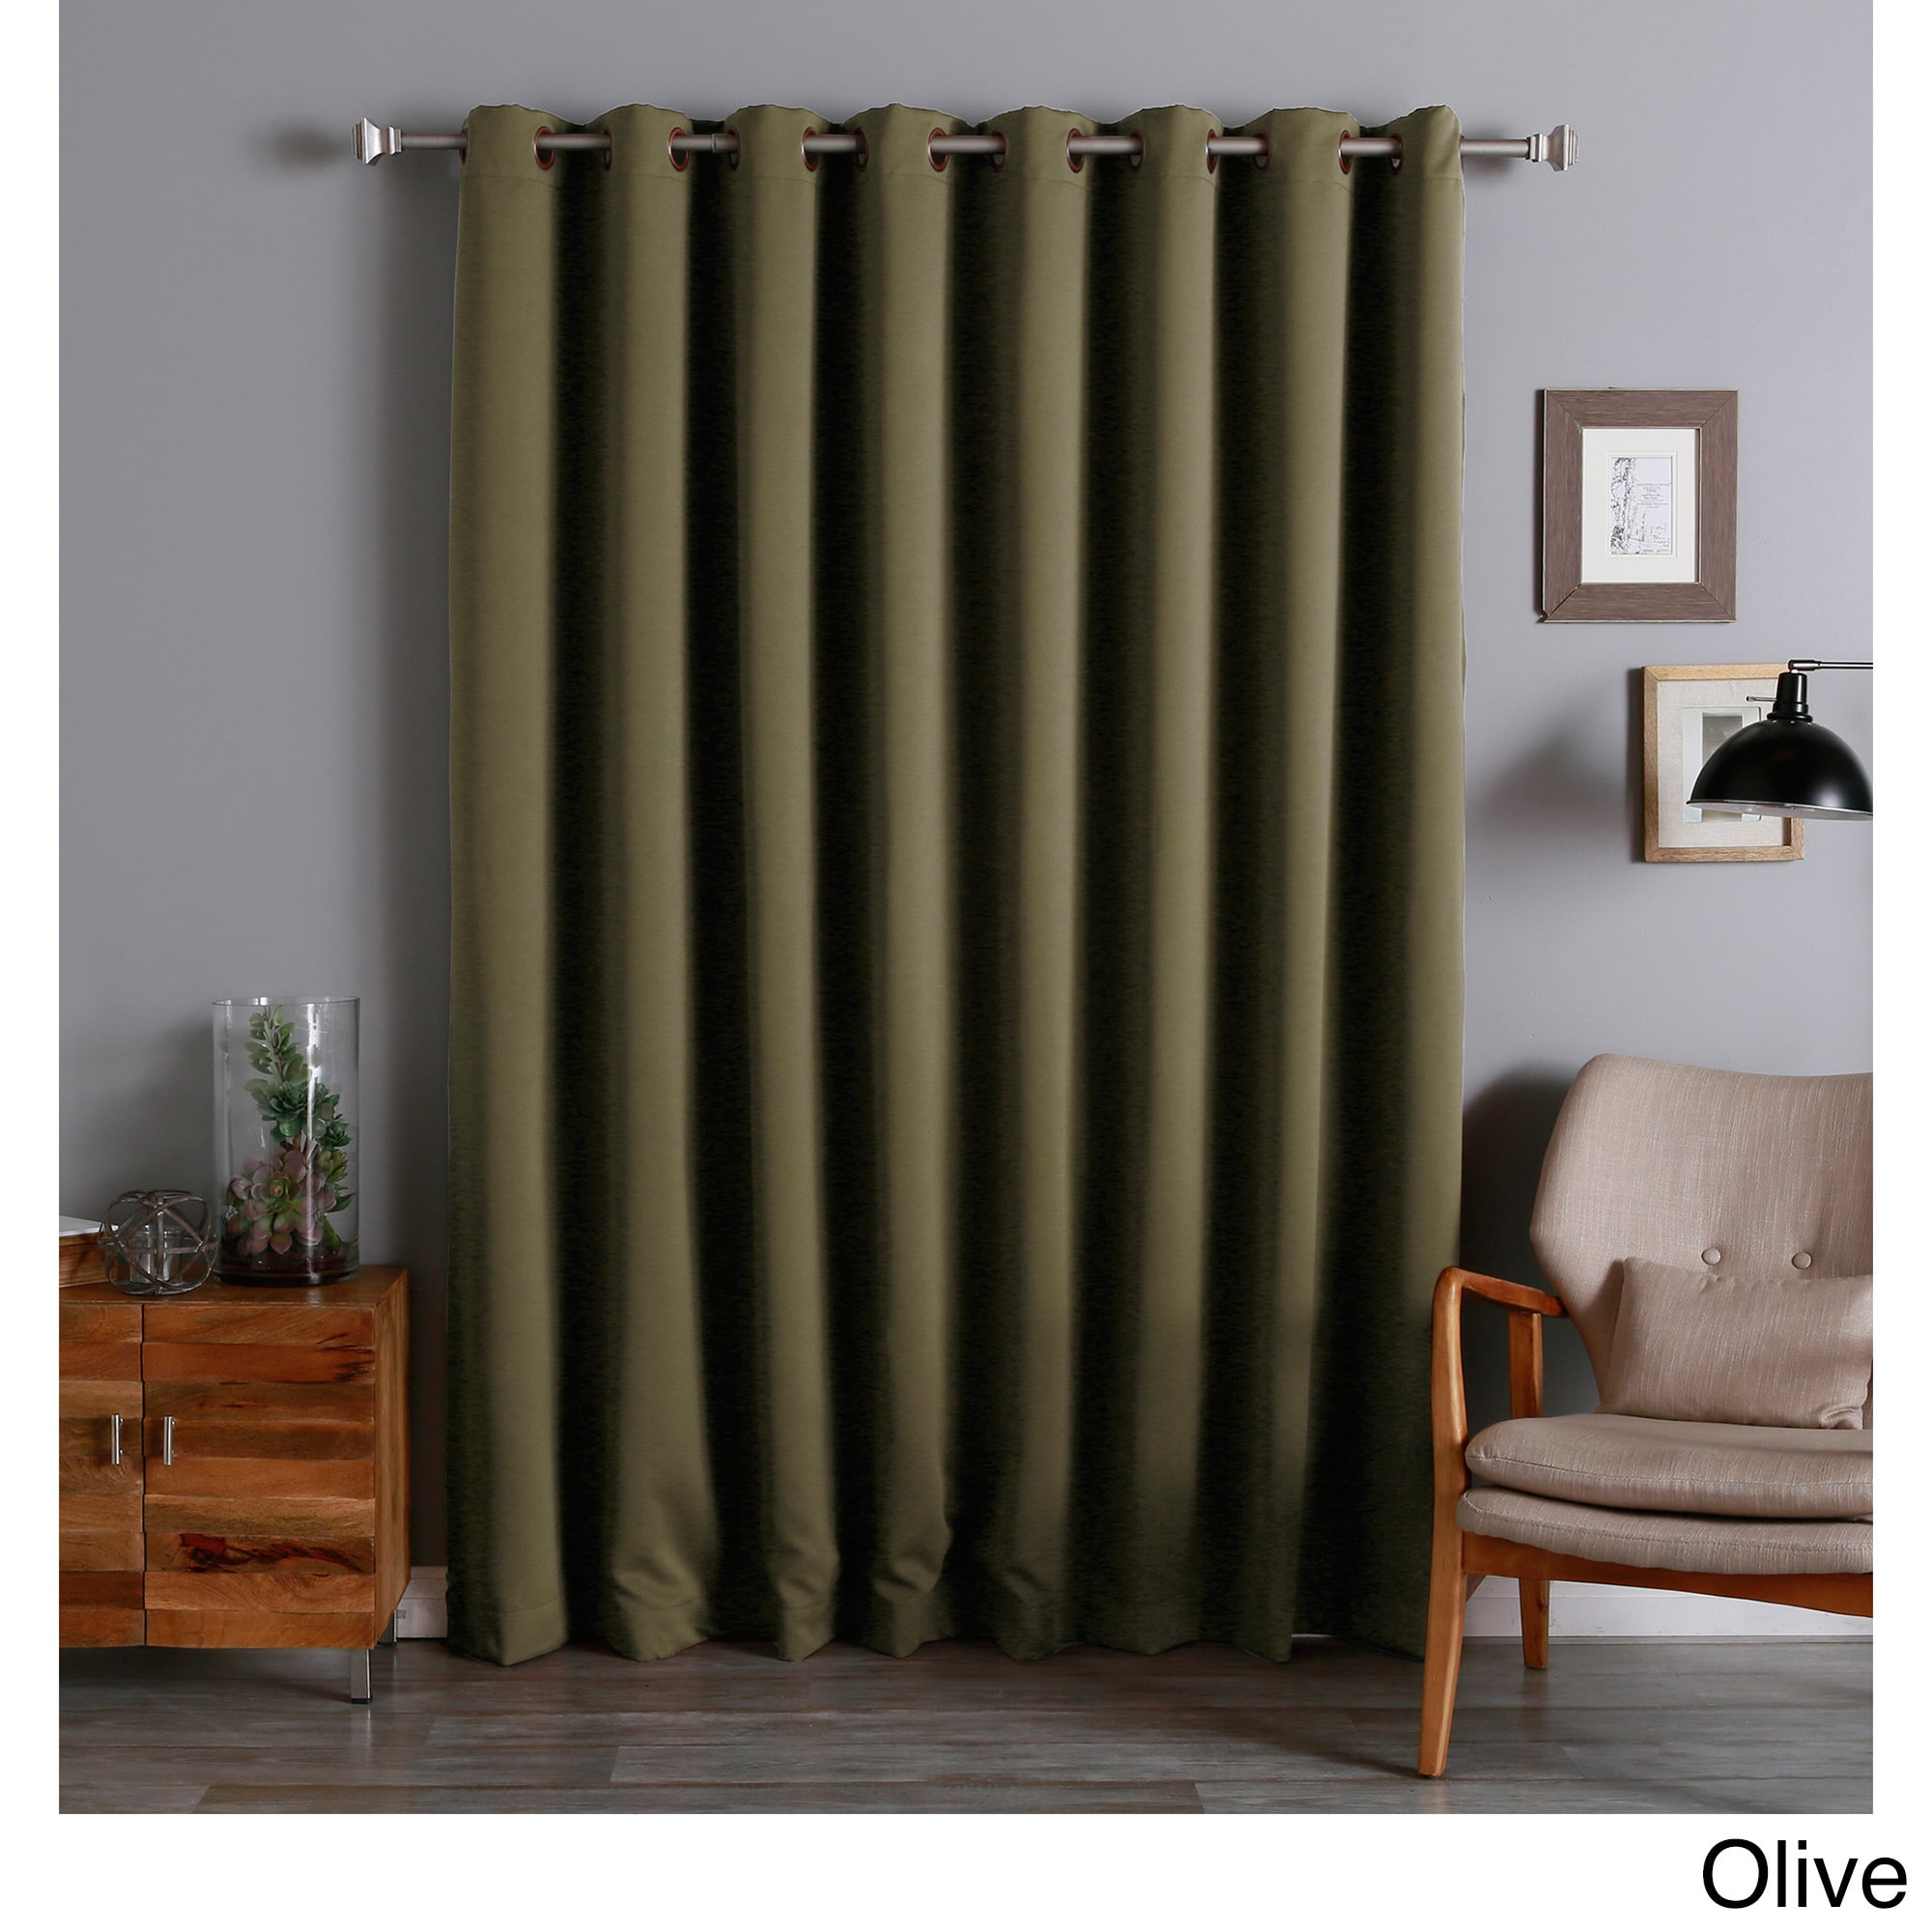 aurora home extra wide thermal 100 x 84 inch blackout curtain panel. Black Bedroom Furniture Sets. Home Design Ideas